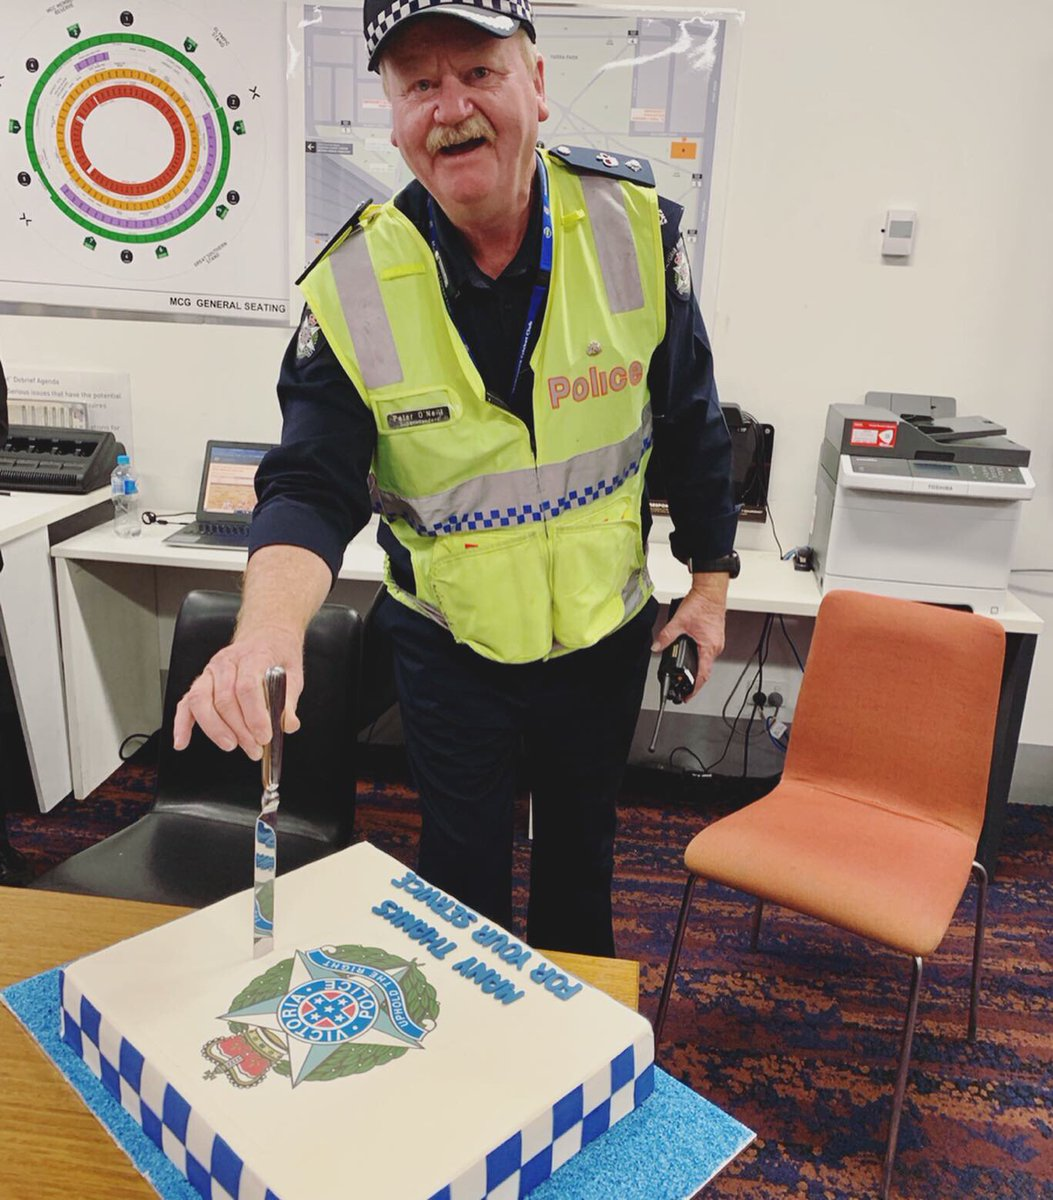 Superintendent Peter O'Neill completed his final shift at the MCG on Saturday. He will be retiring after 46 years of service.  To his surprise, the @MCG provided a cake to thank him for coordinating police presence at MCG events.  <br>http://pic.twitter.com/aXpmtACBSX